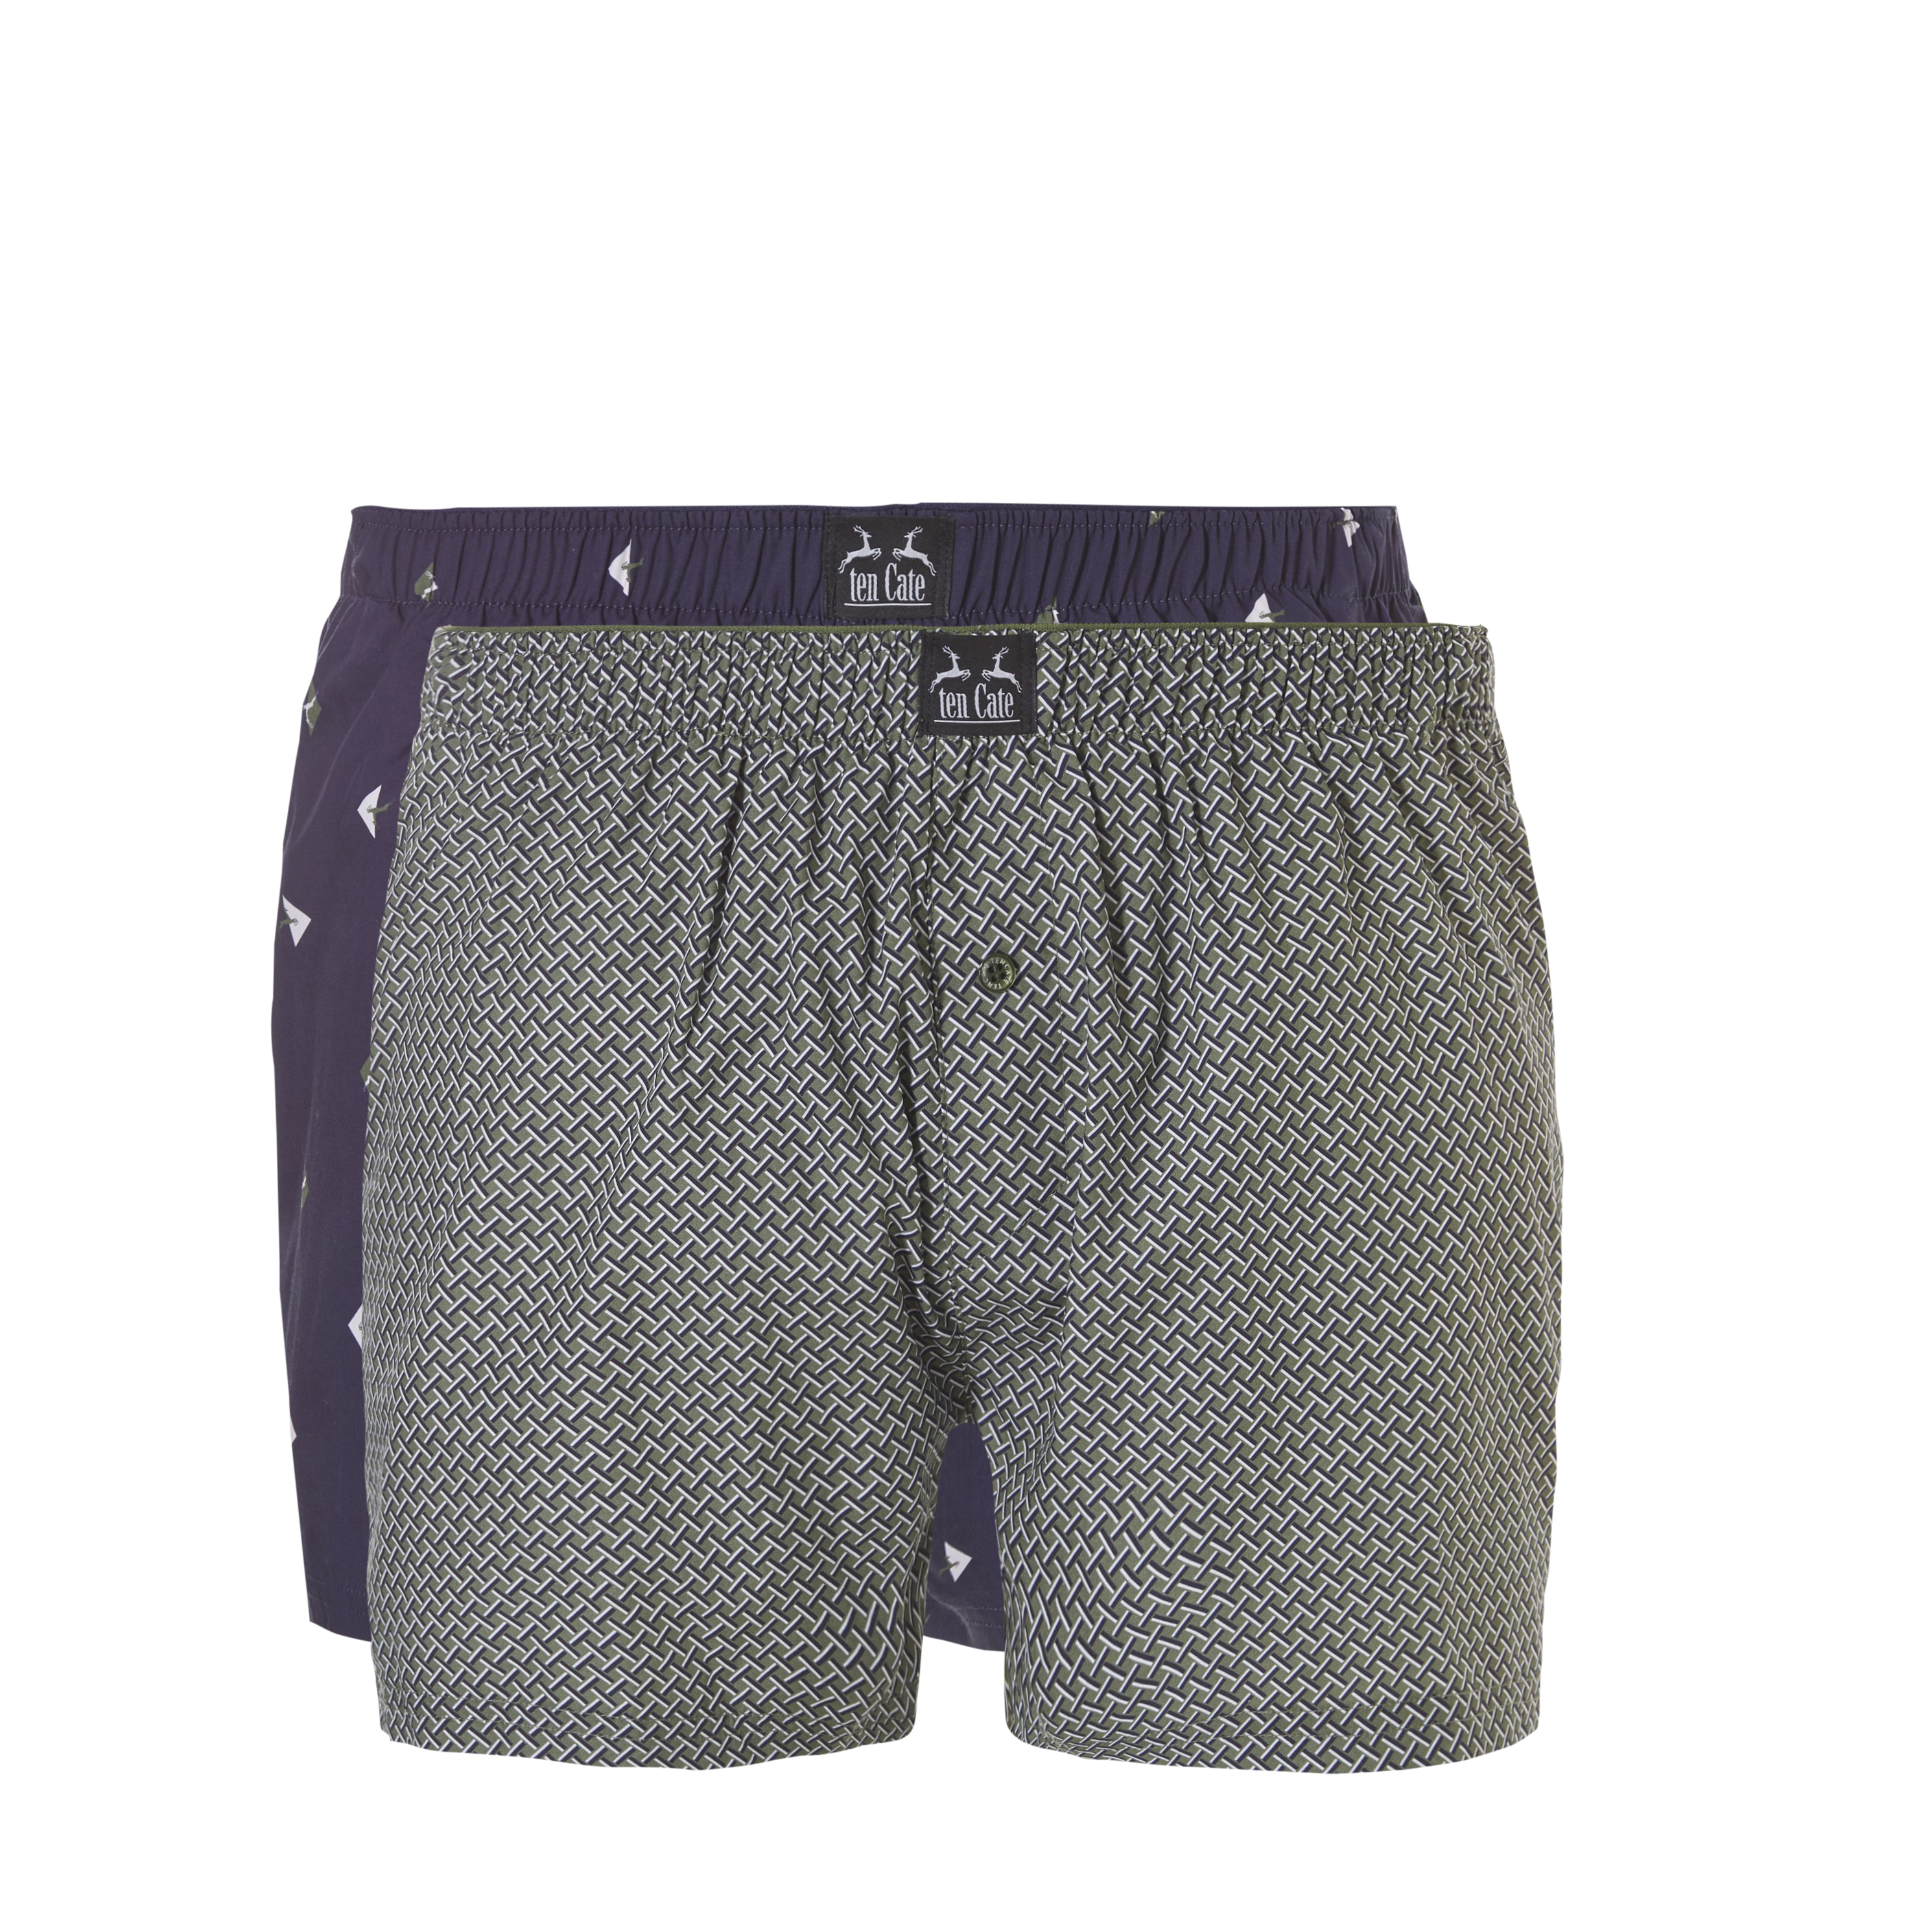 Ten Cate Woven Boxershorts 2-Pack Navy Triangle/Green Weave